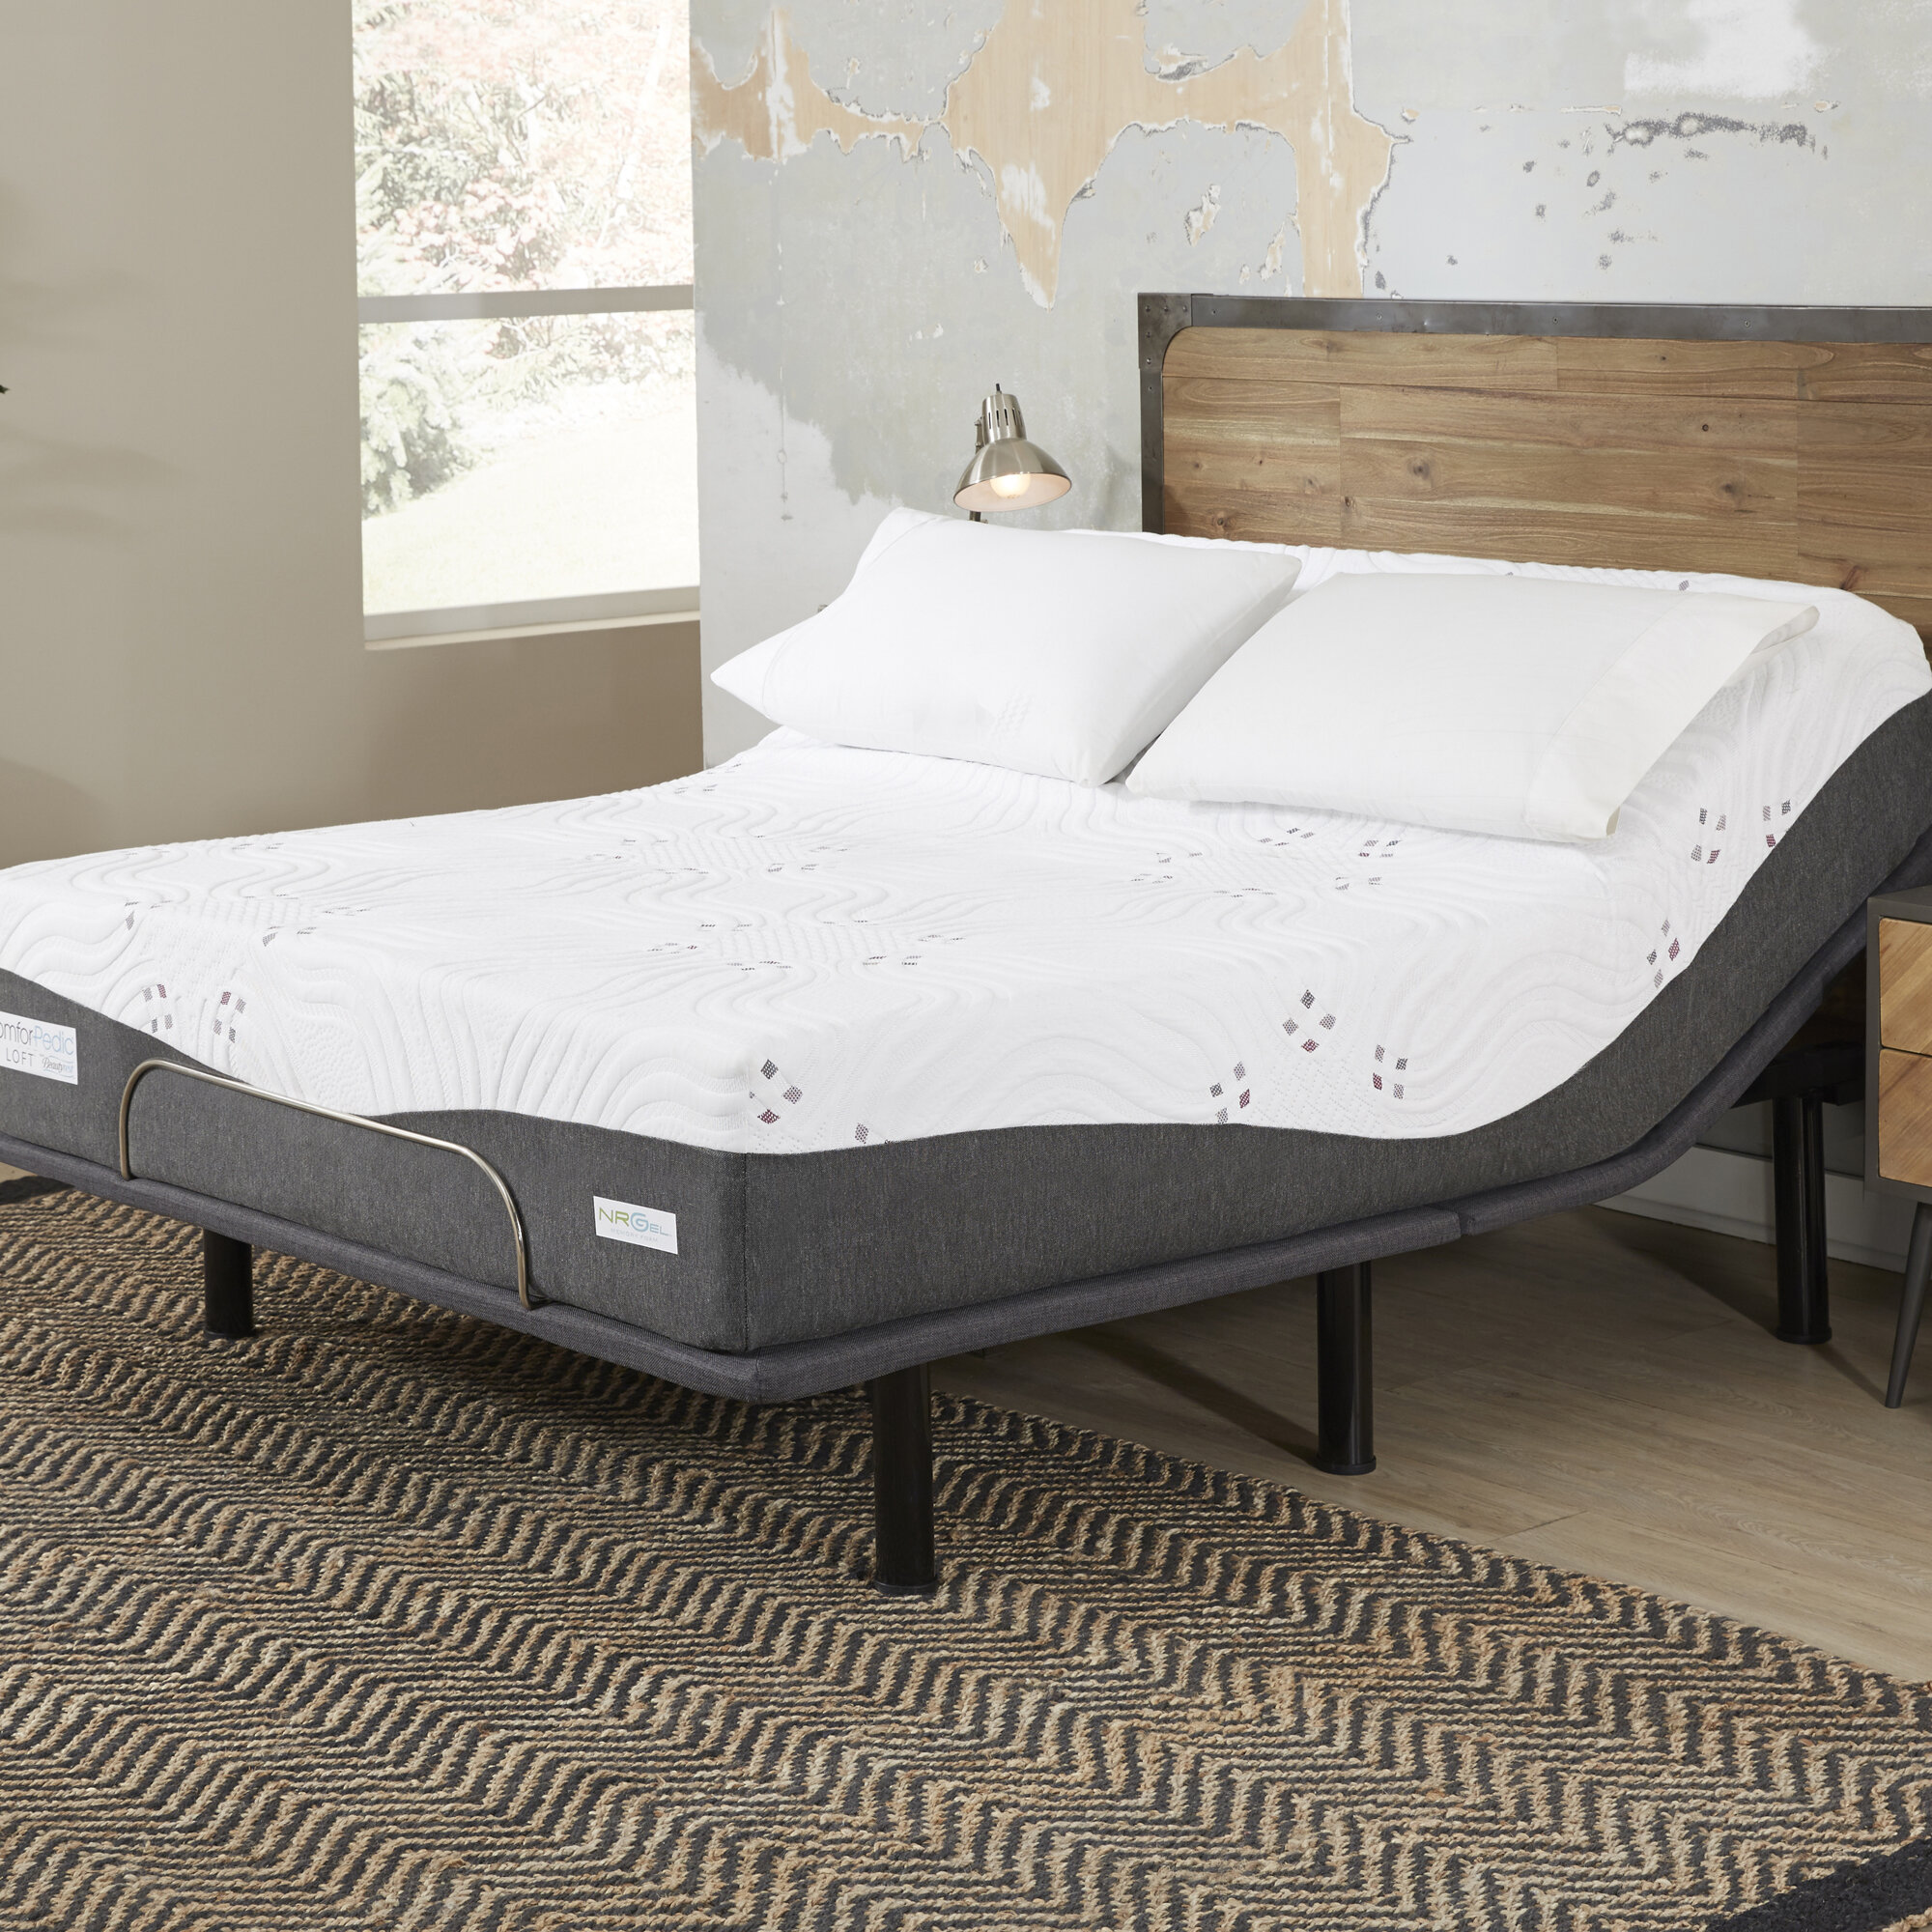 Comforpedic Loft From Beautyrest 12 Medium Gel Memory Foam Mattress With Bed Frame And Adjustable Base Wayfair